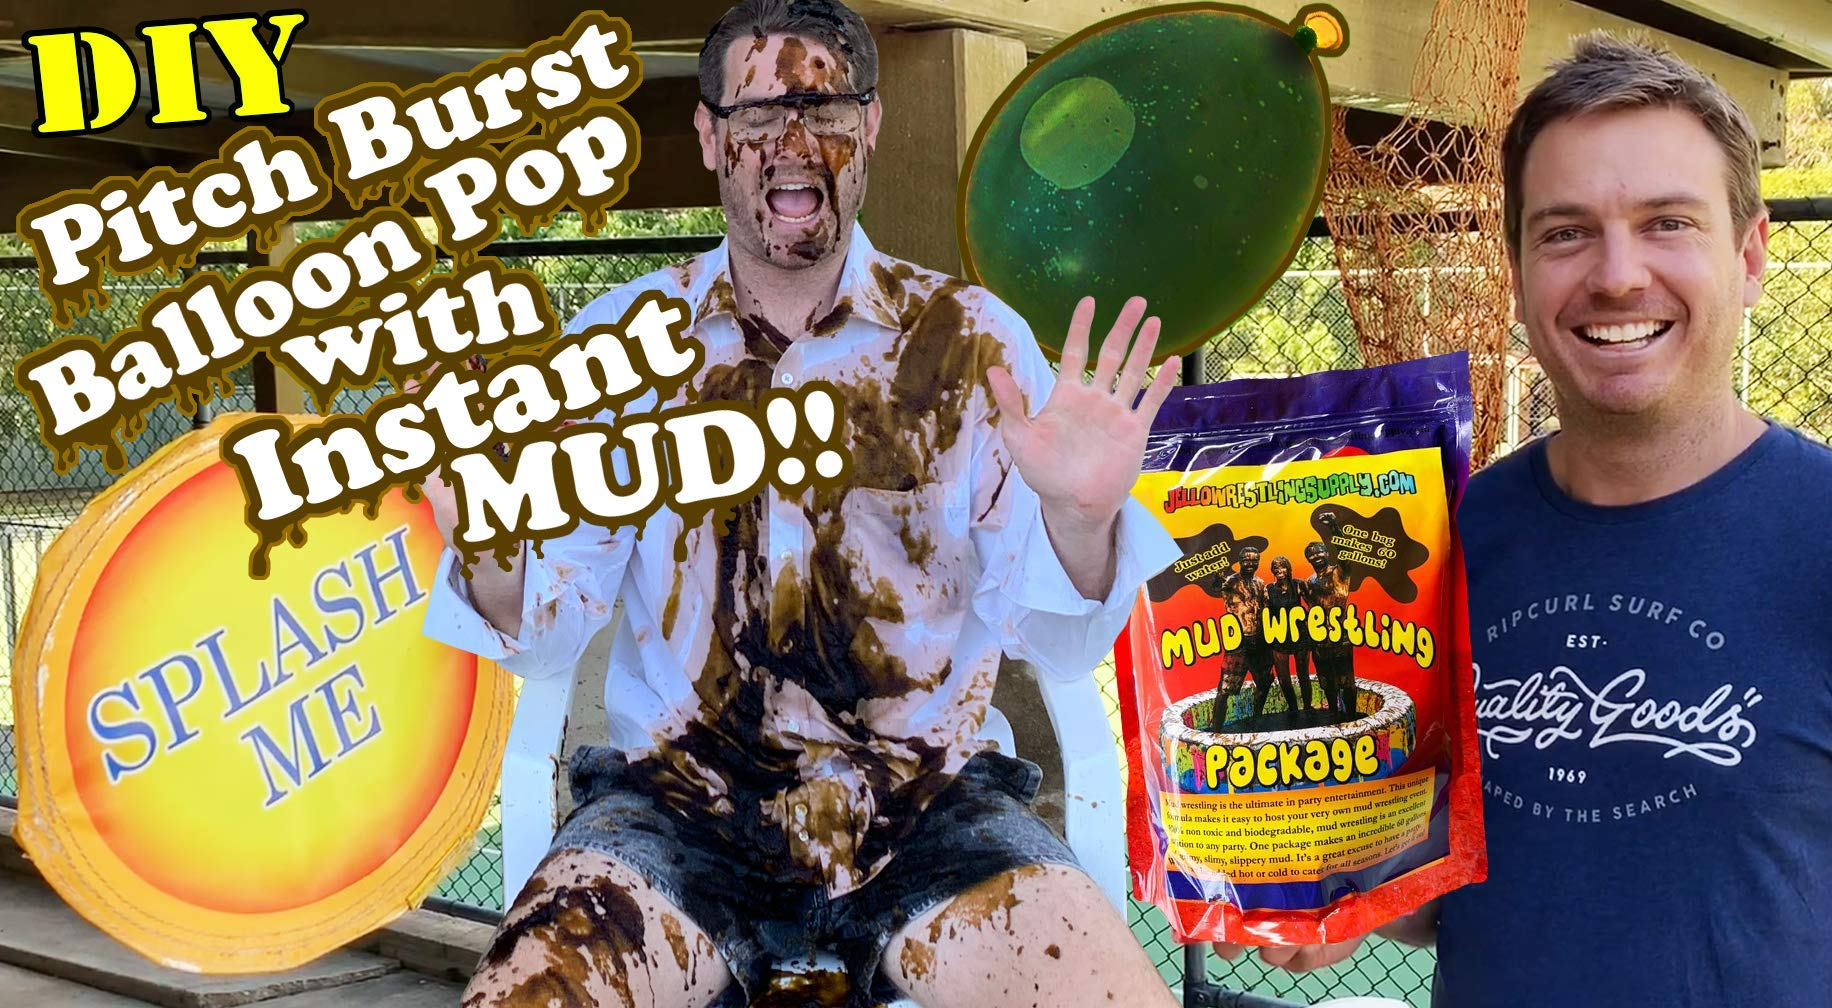 INSTANT MUD for Wrestling, Mud Pies, Balloons & Bombs JUST ADD WATER Bulk Mud powder makes 60 GALLONS of fake mud. Safe, clean mud run obstacle pits, pitch burst, Slime sludge messy kit oil tar by JelloWrestlingSupply.com (Image #4)